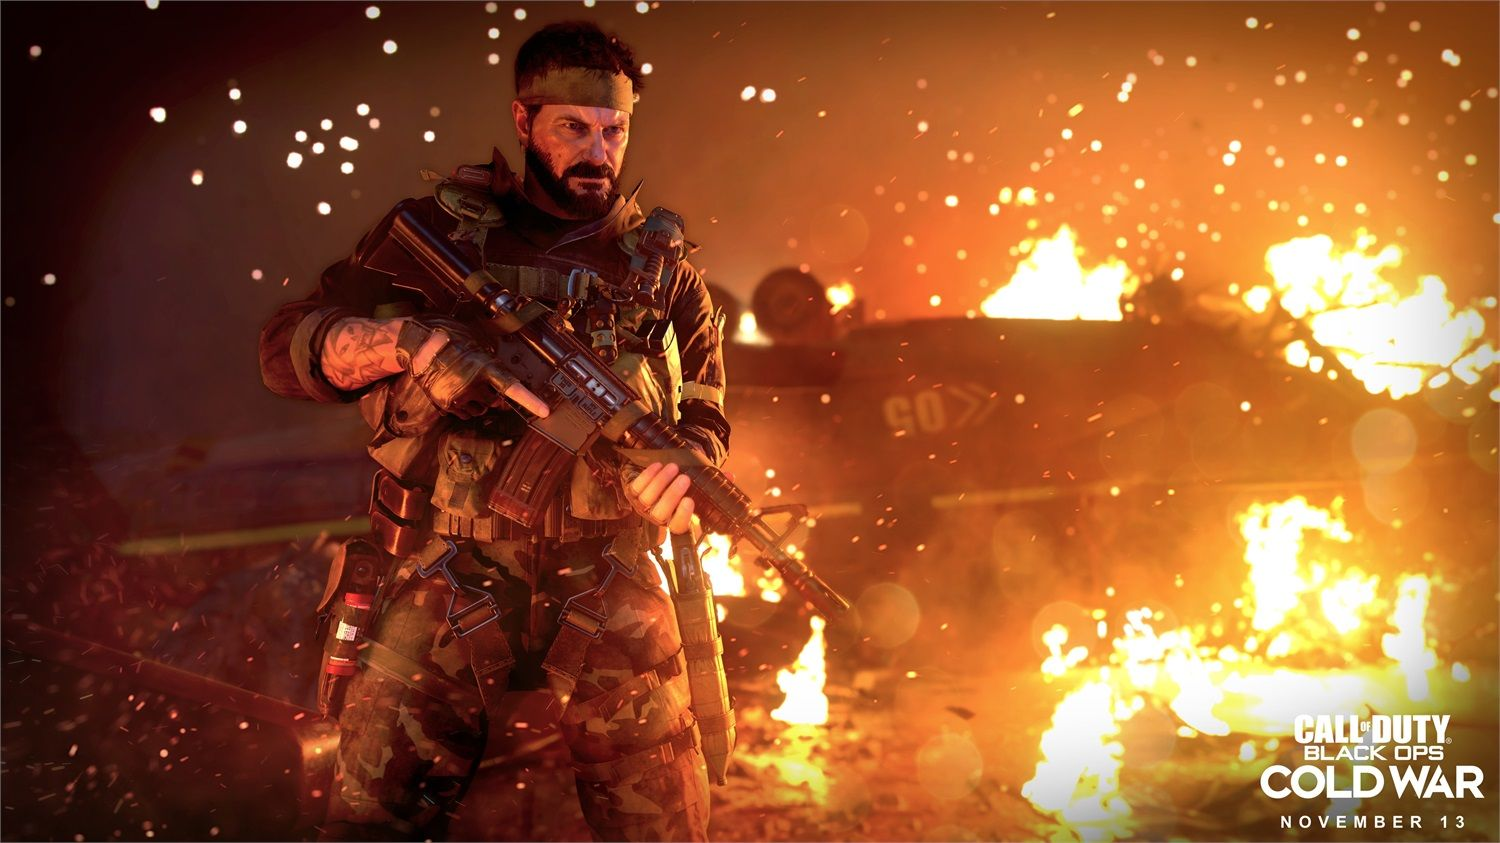 Activision Call of Duty: Black Ops Cold War